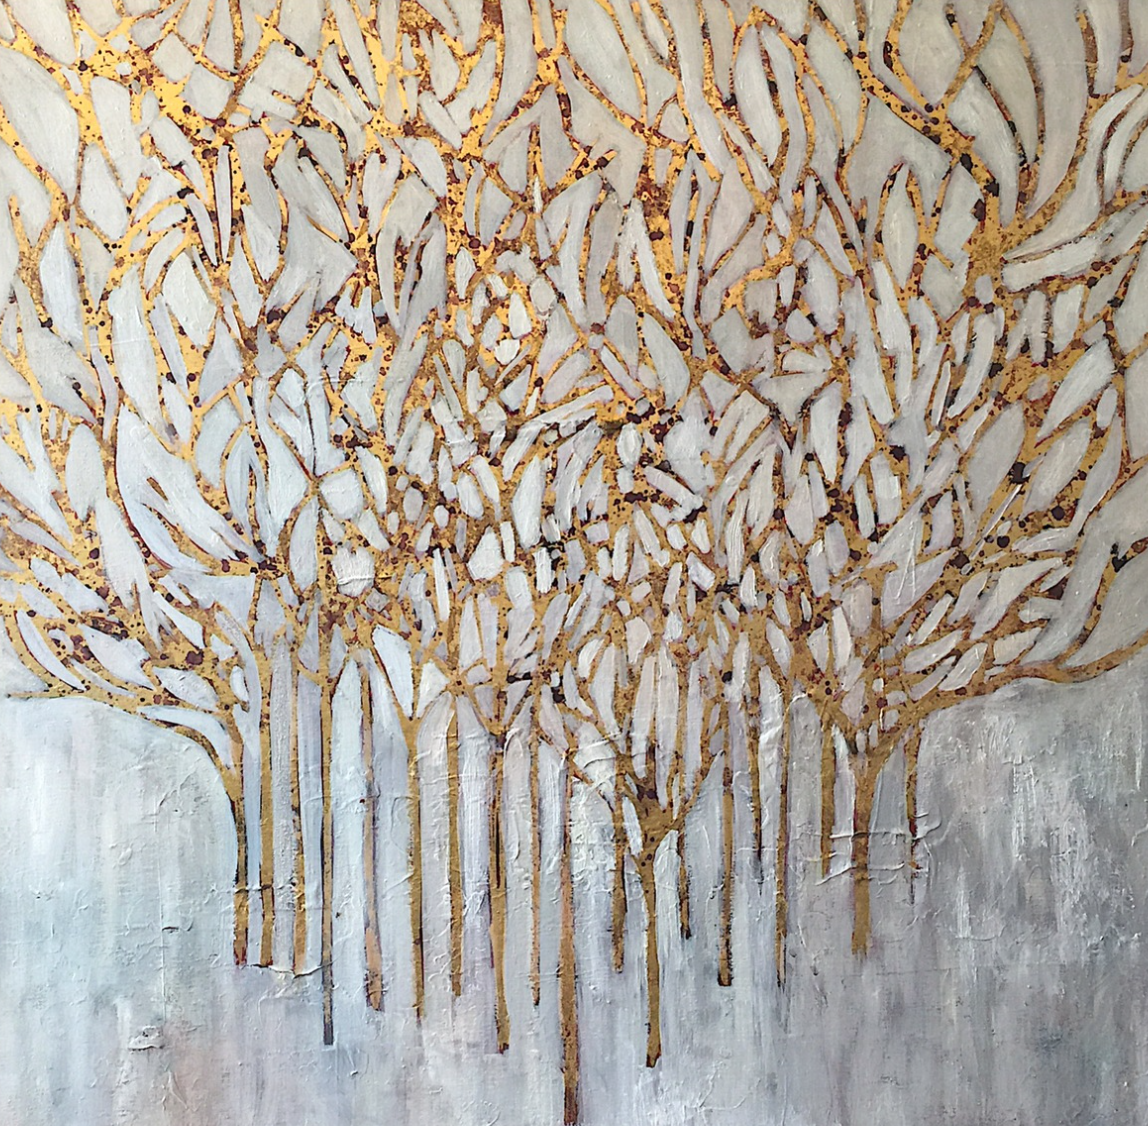 Title: White Forest